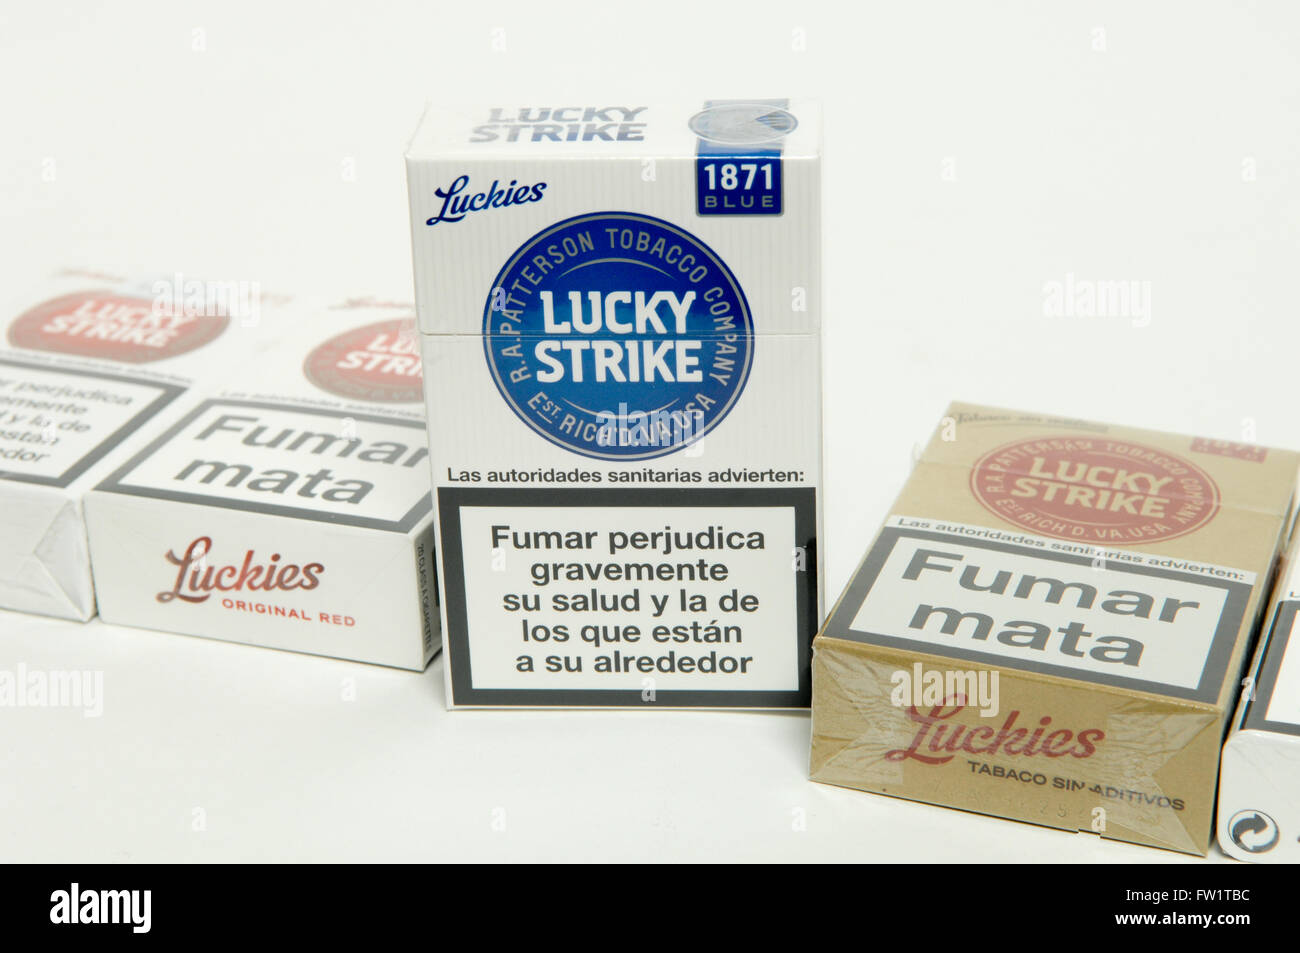 Lucky Strike Blue Cigarettes Packet Stock Photos & Lucky Strike Blue